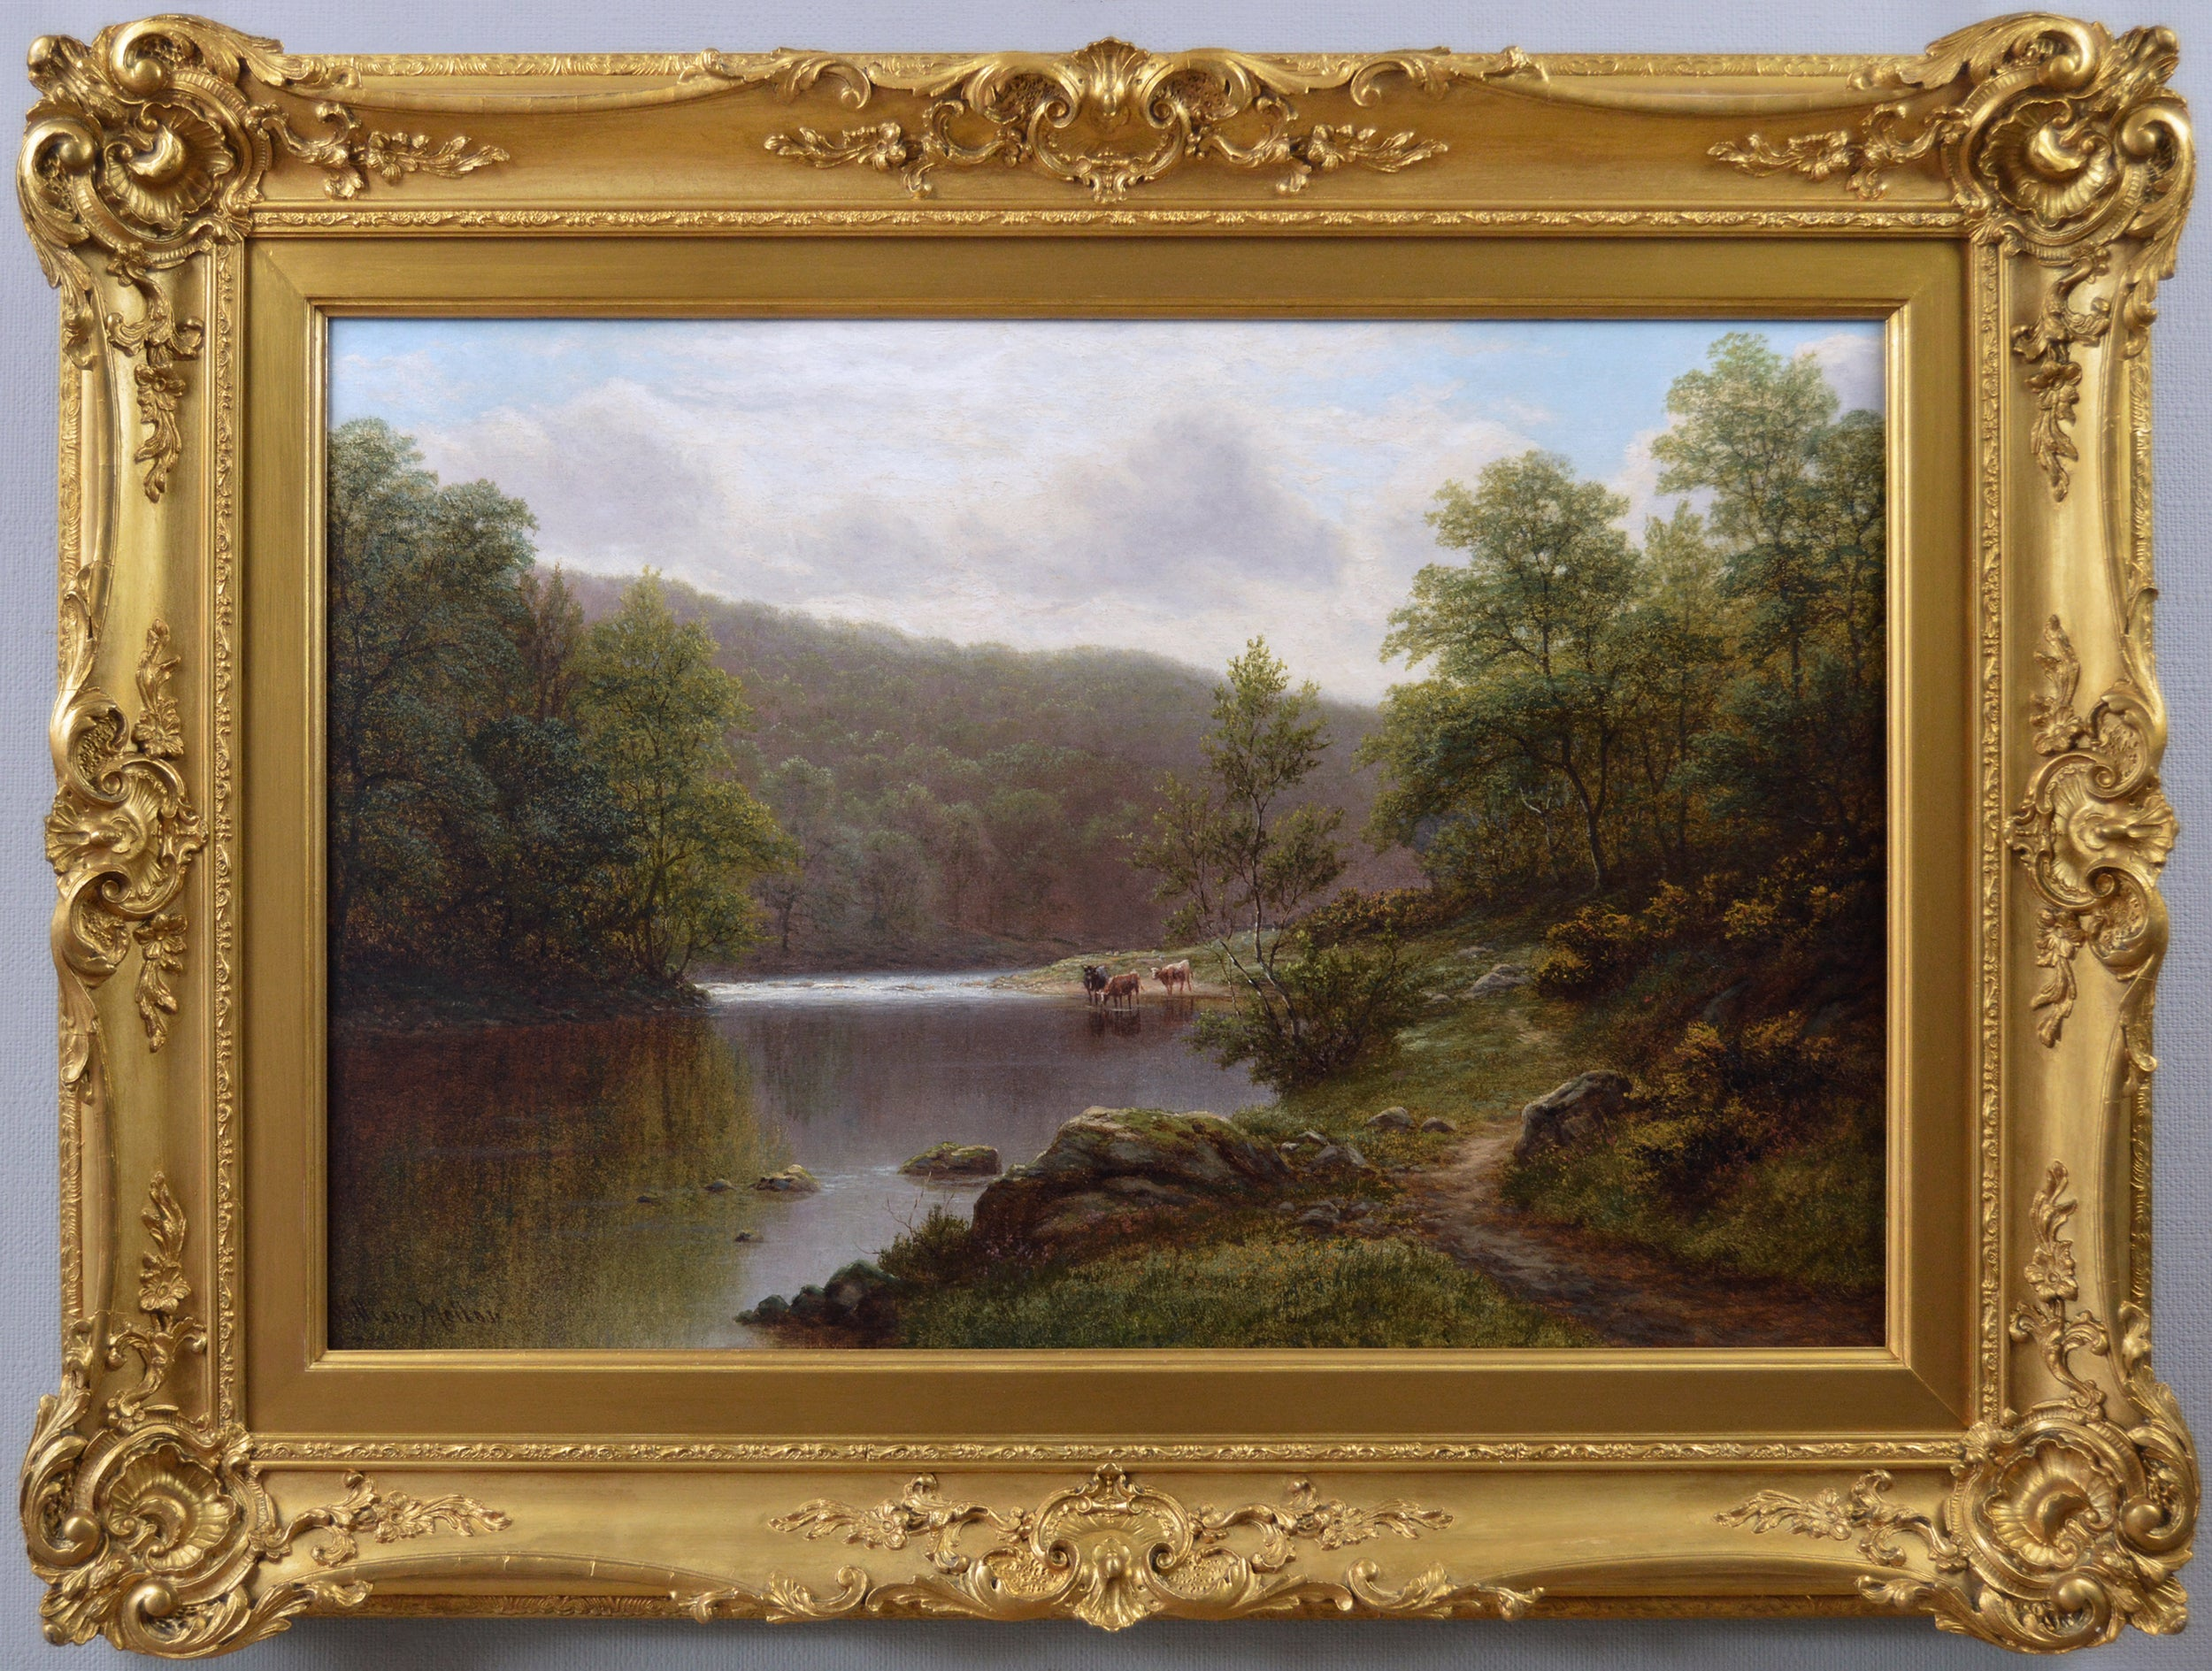 19th Century landscape oil painting of cattle by a river